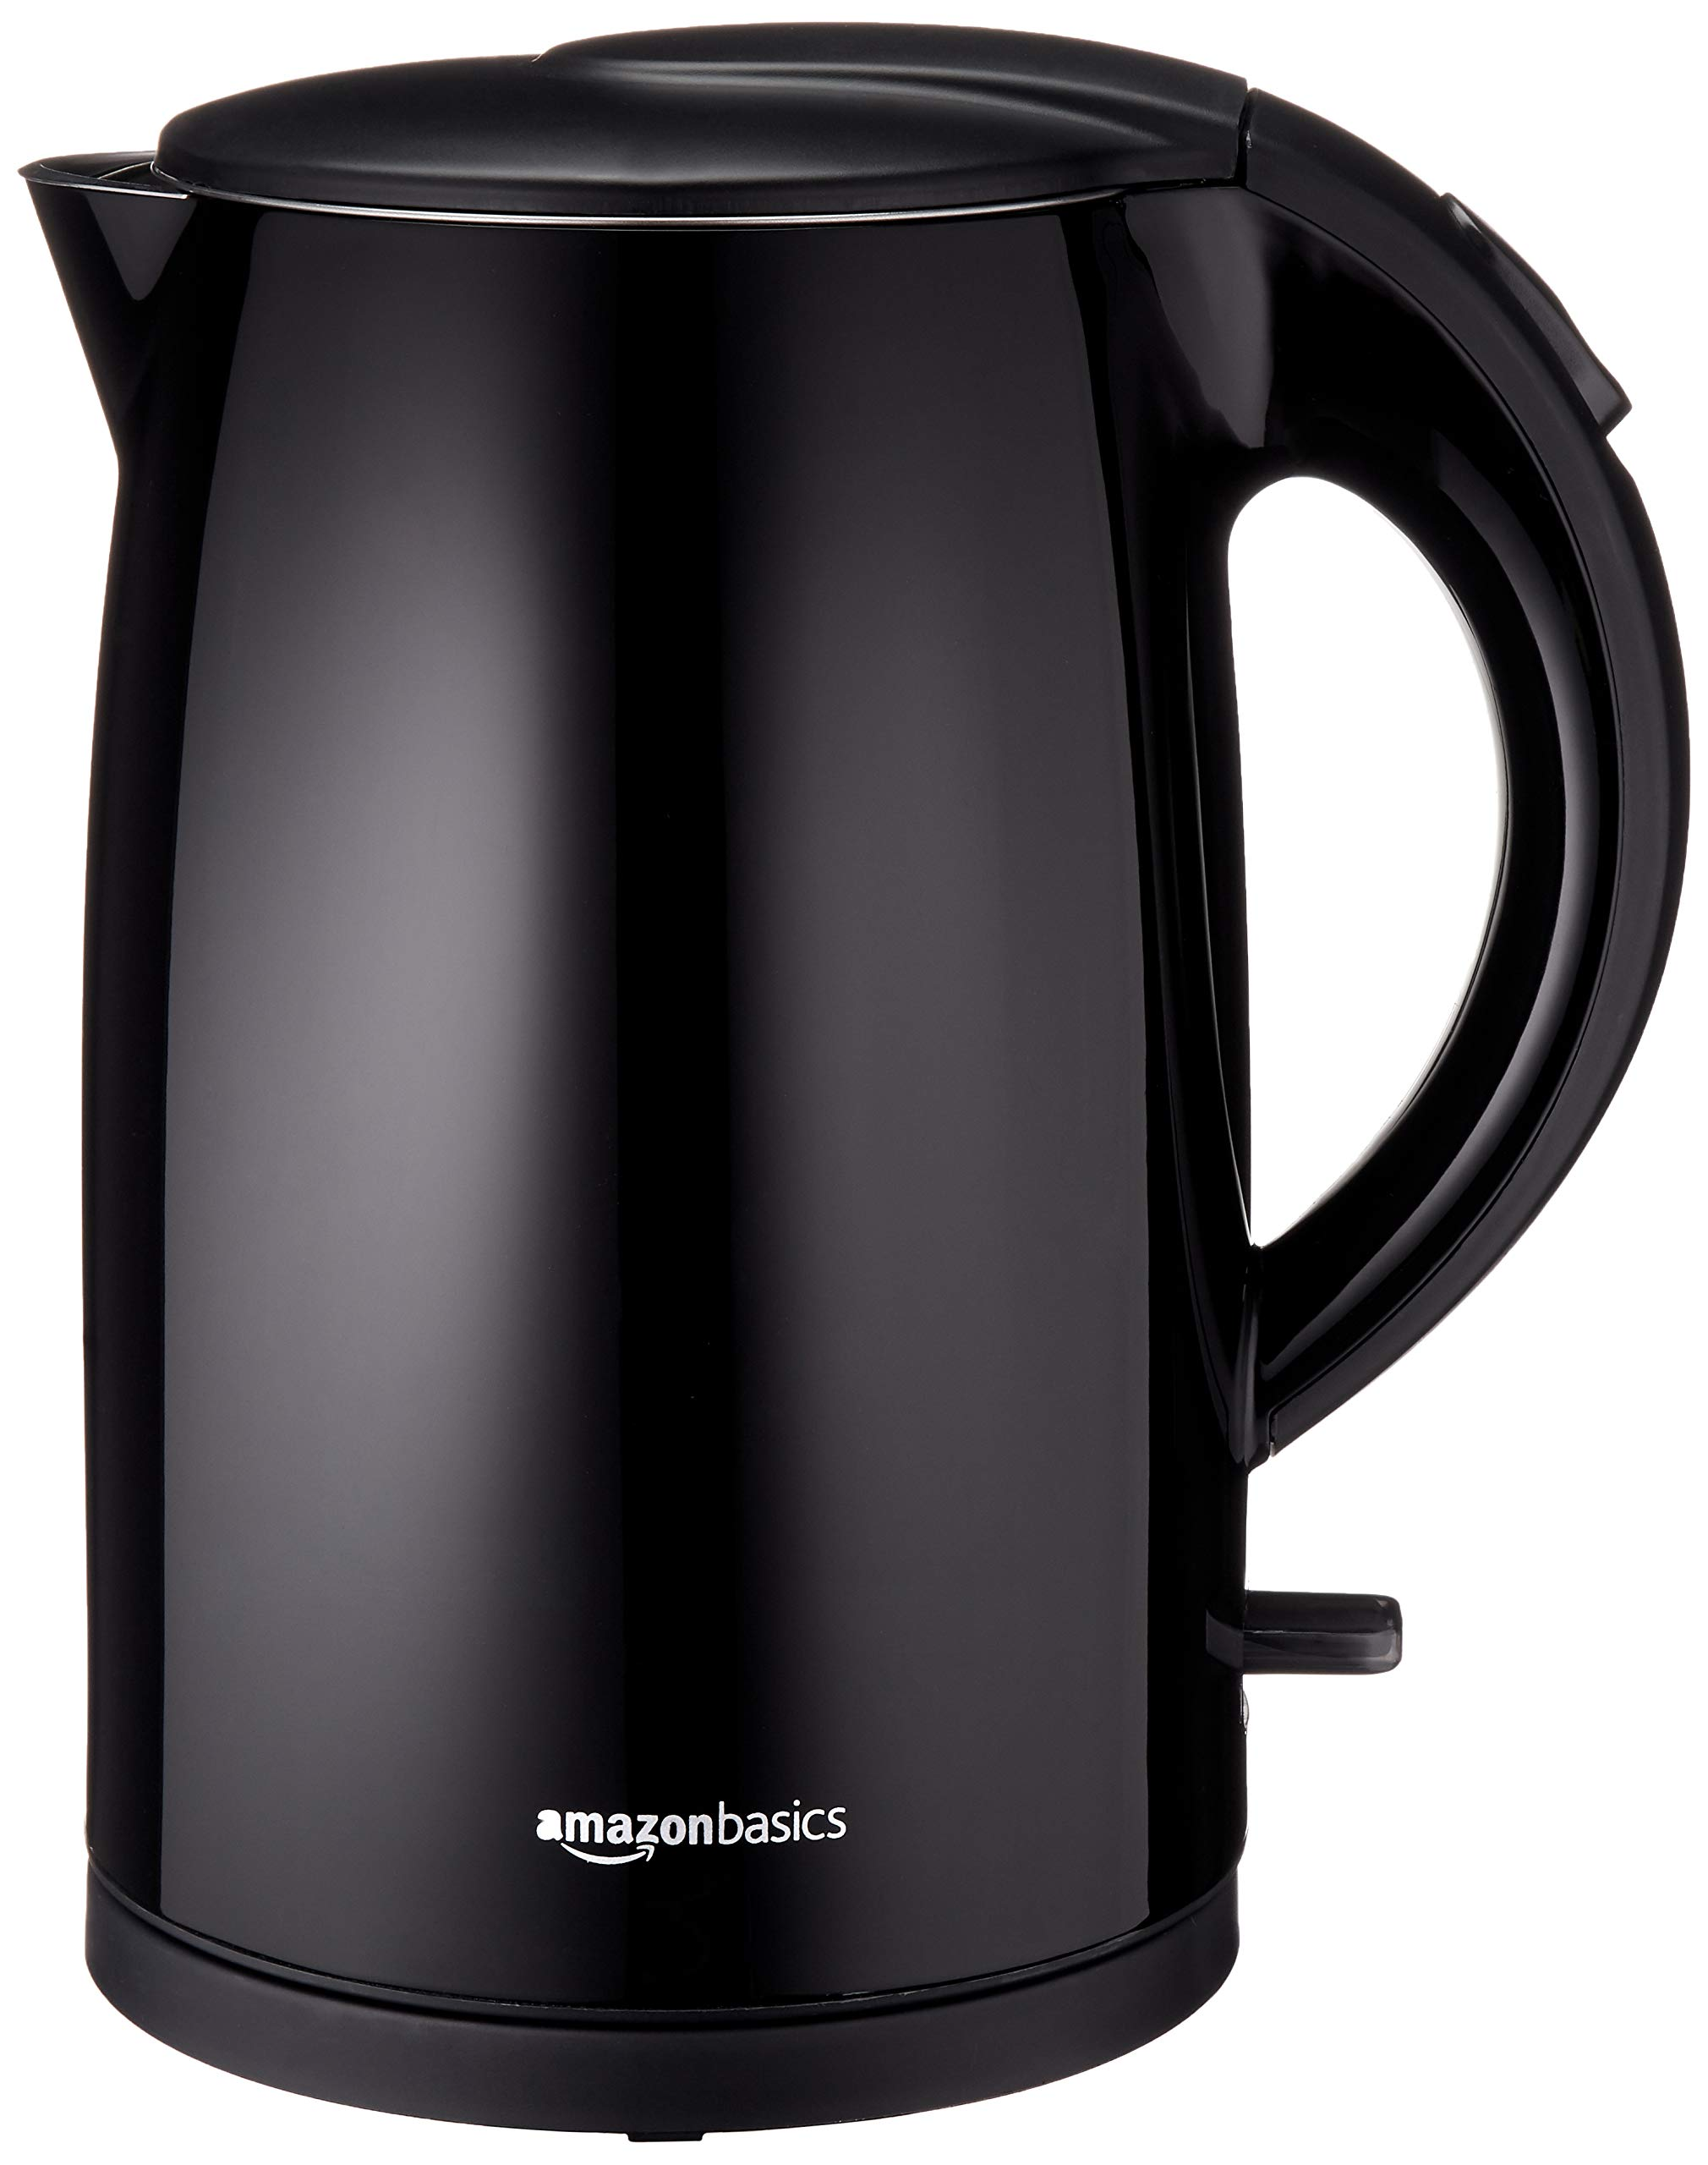 AmazonBasics Double-Walled Stainless Steel Kettle - 1.7 Liter